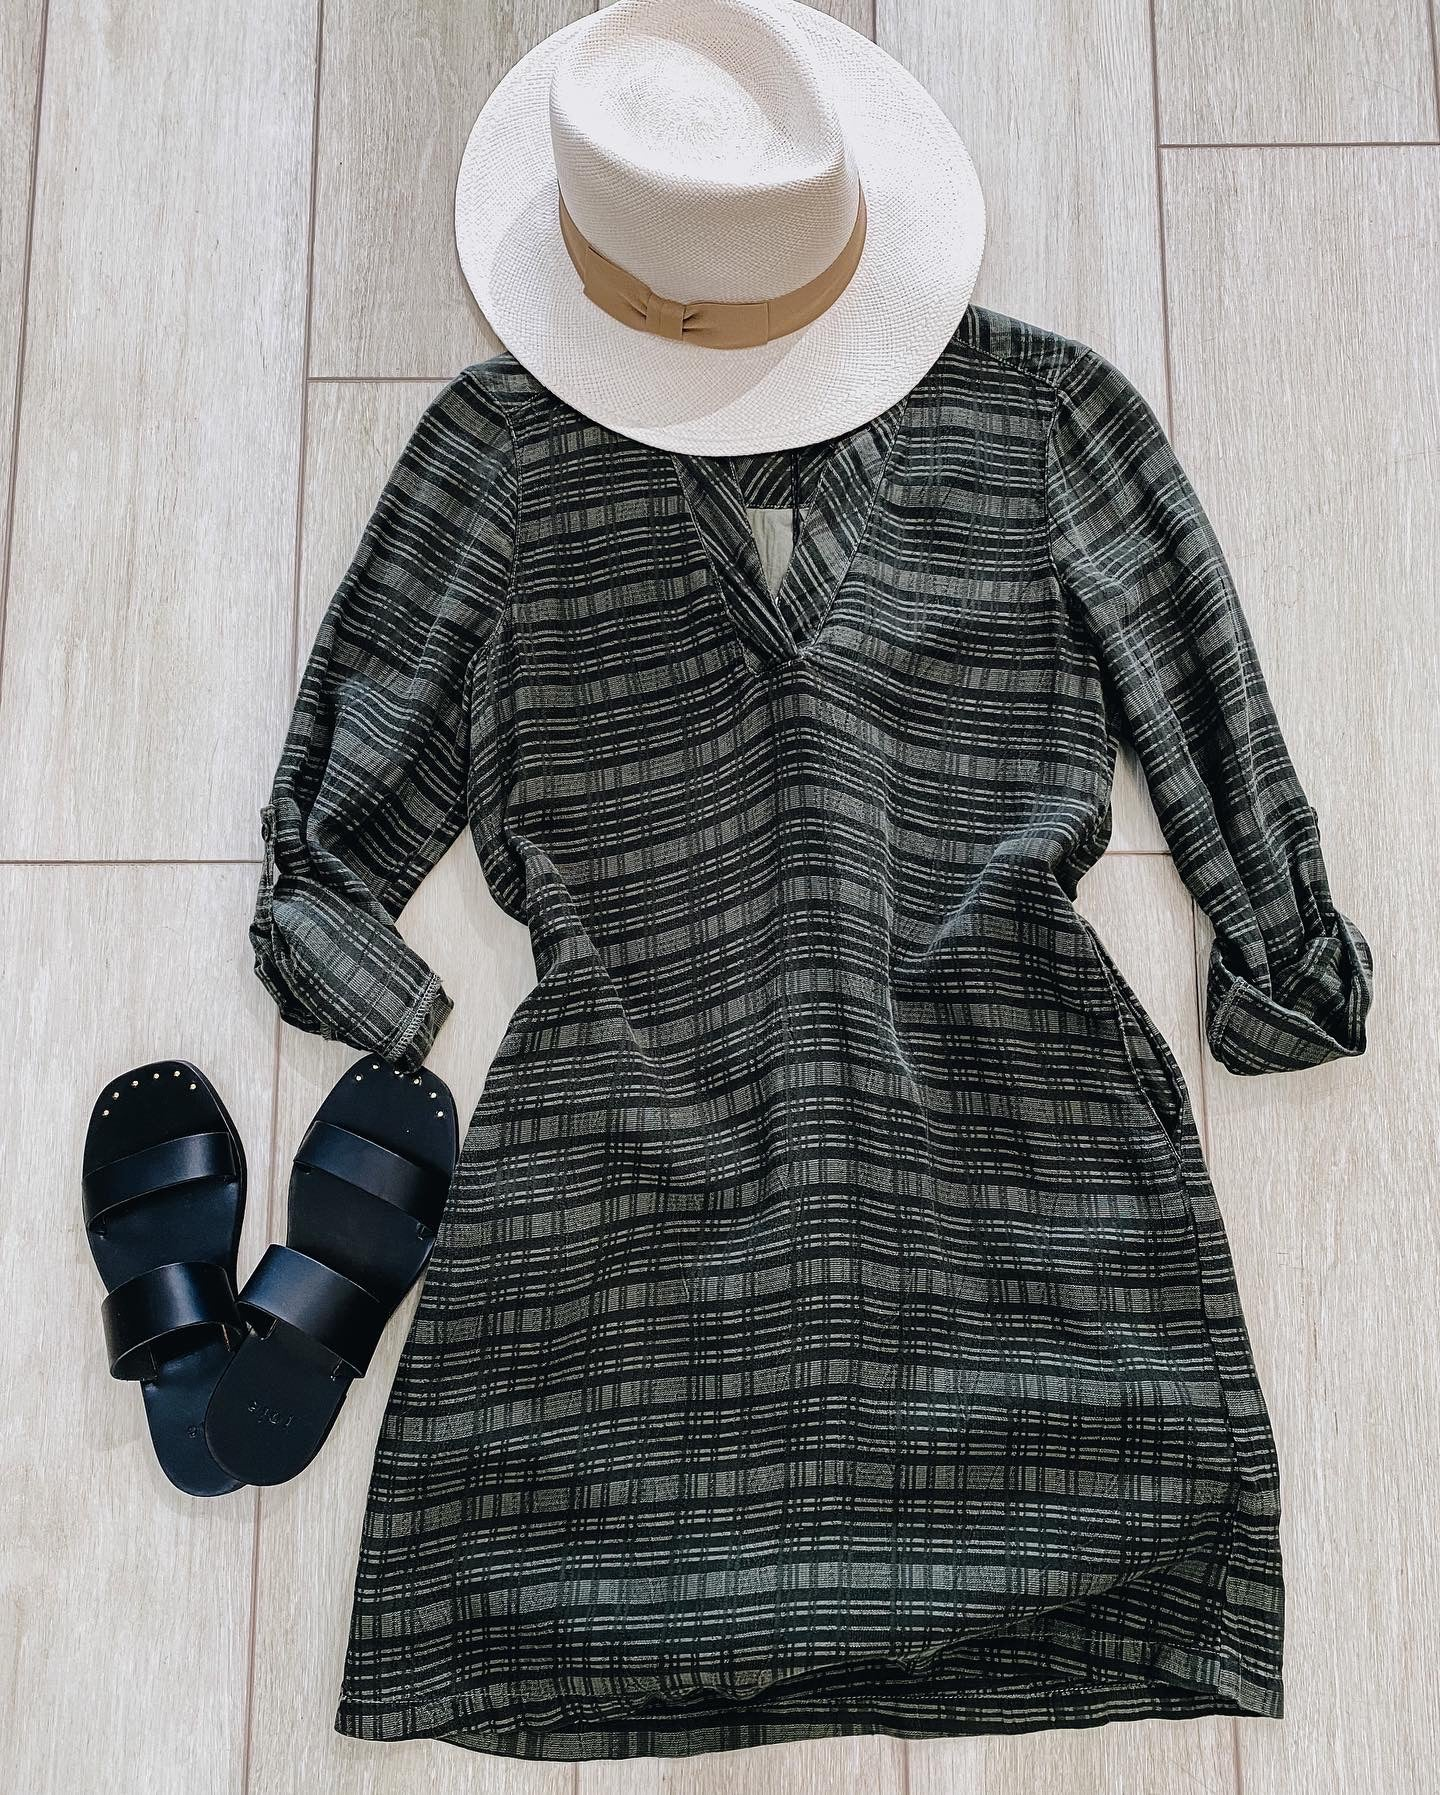 Maven West Green Plaid 3/4 Sleeve Pocket Dress